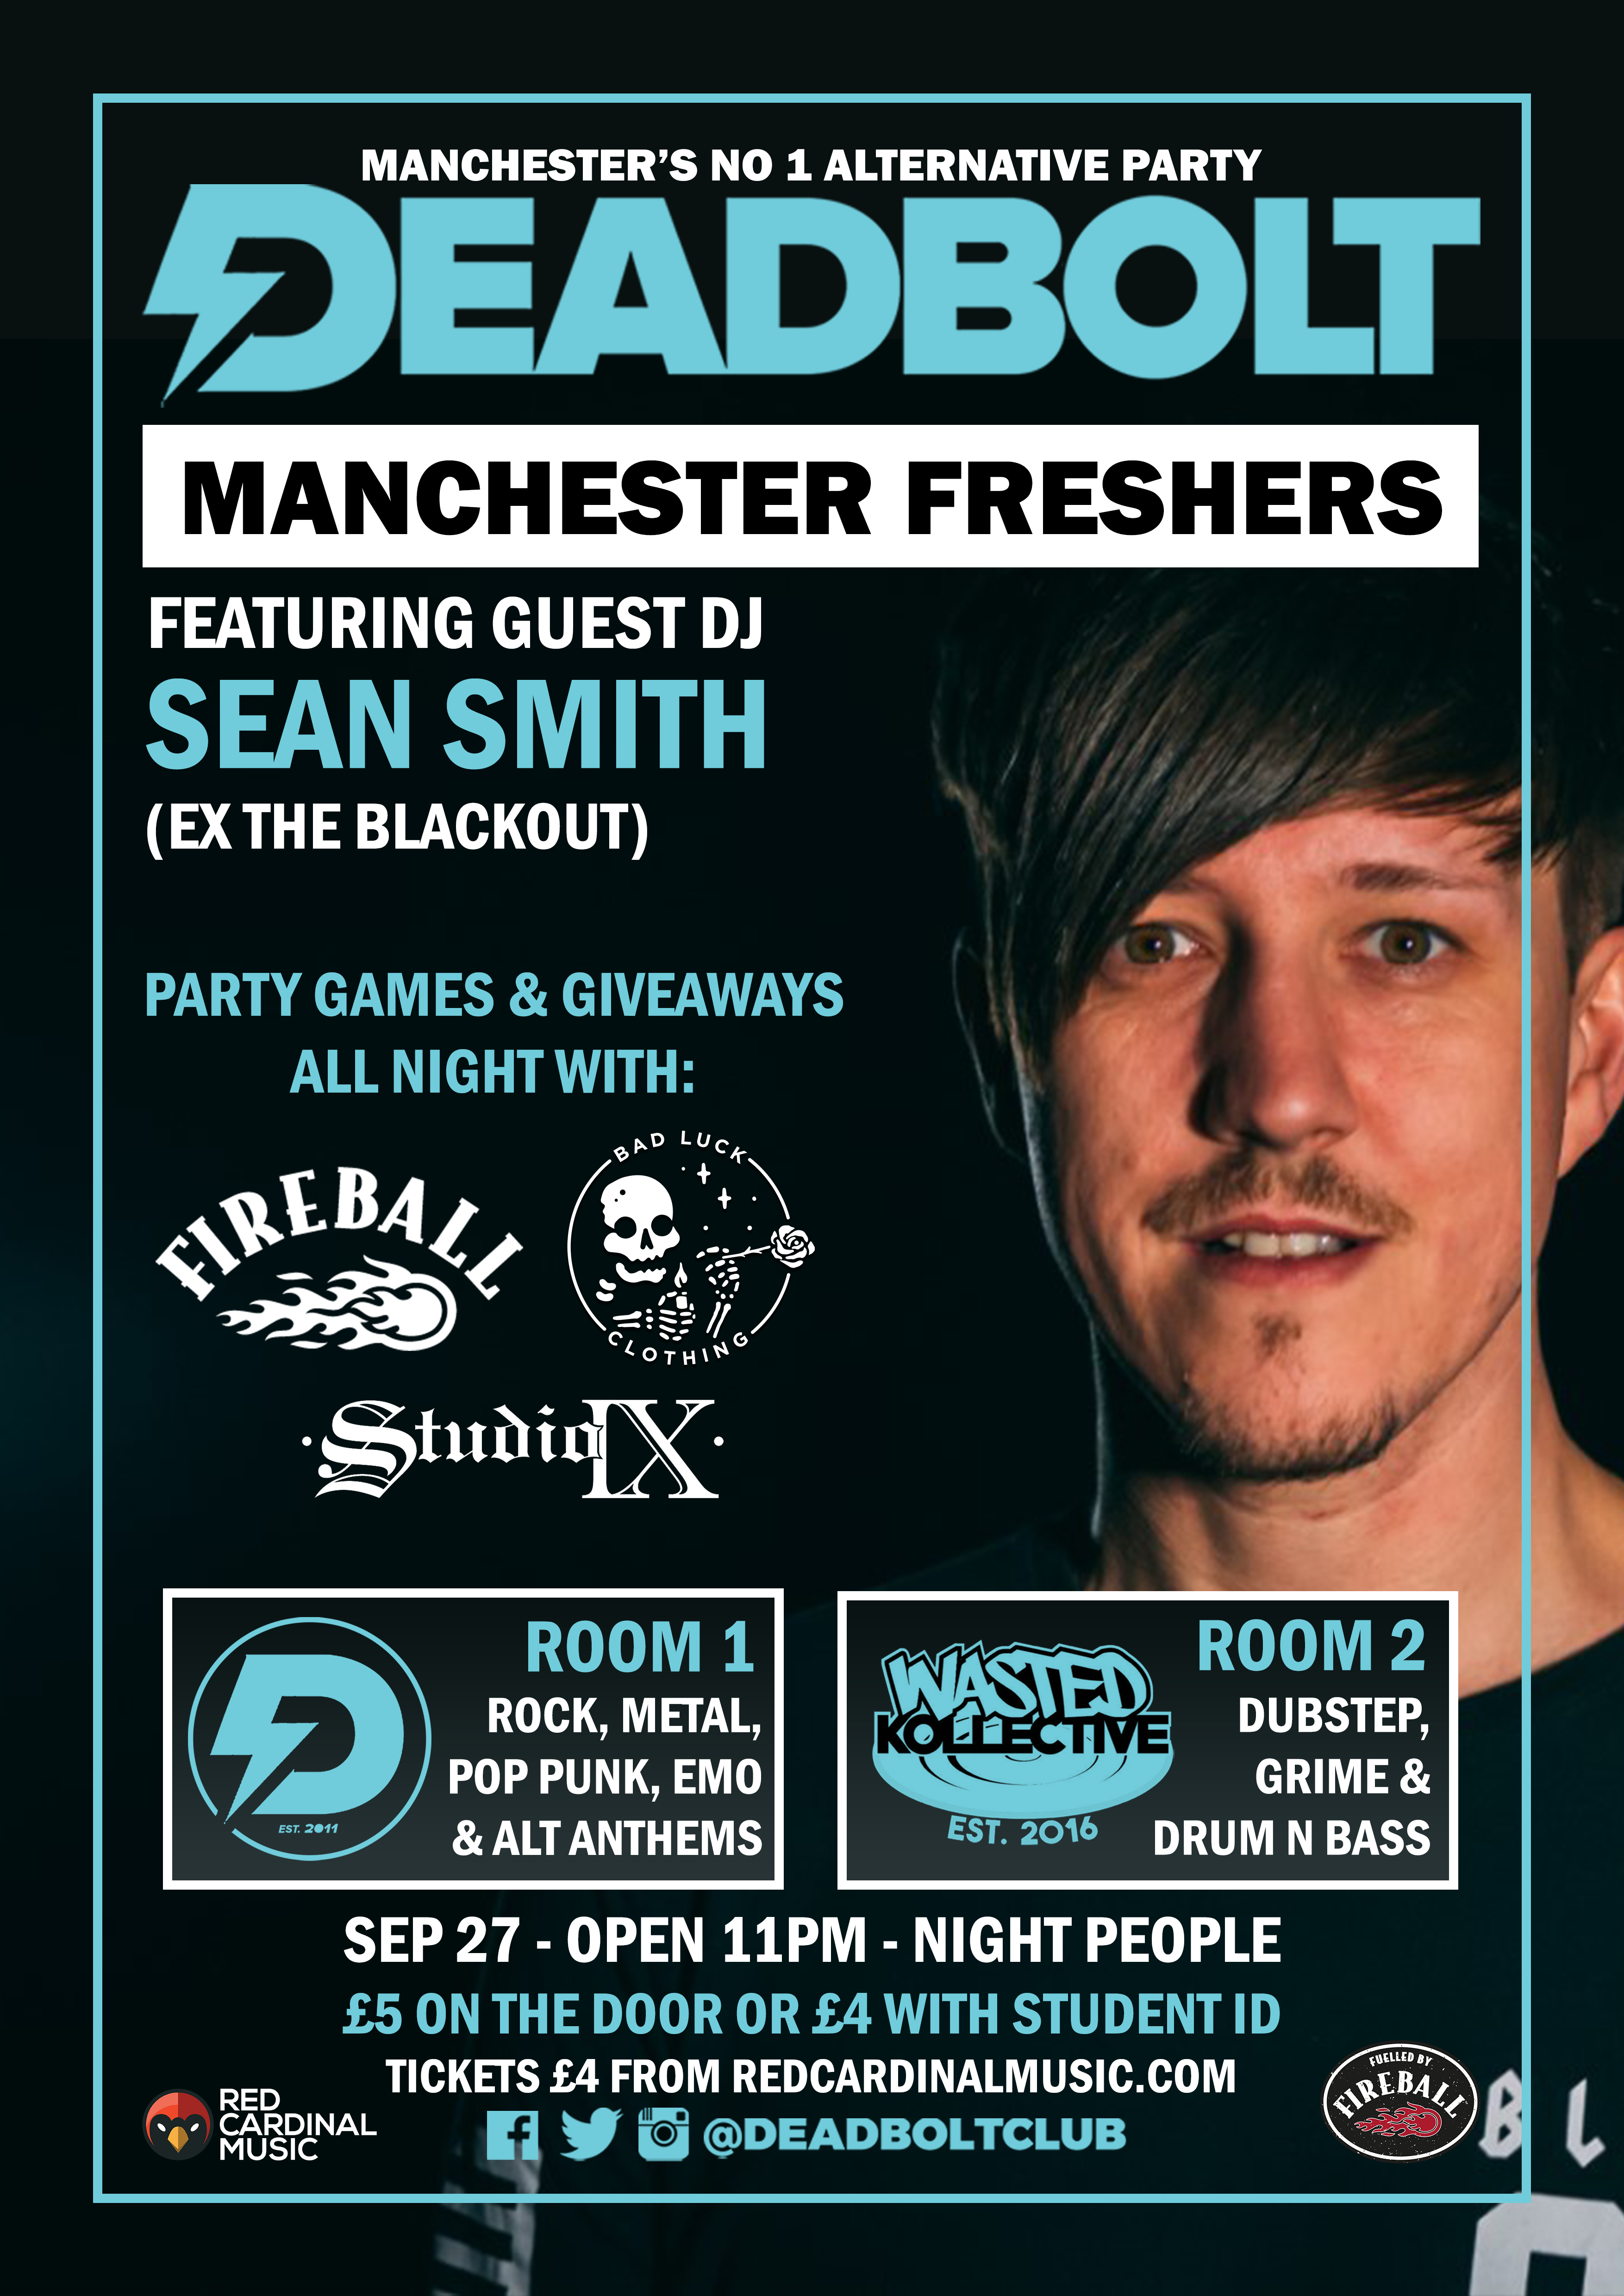 Deadbolt Manchester Alternative Freshers 2019 with Sean Smith & Wasted Kollective - Poster - Red Cardinal Music